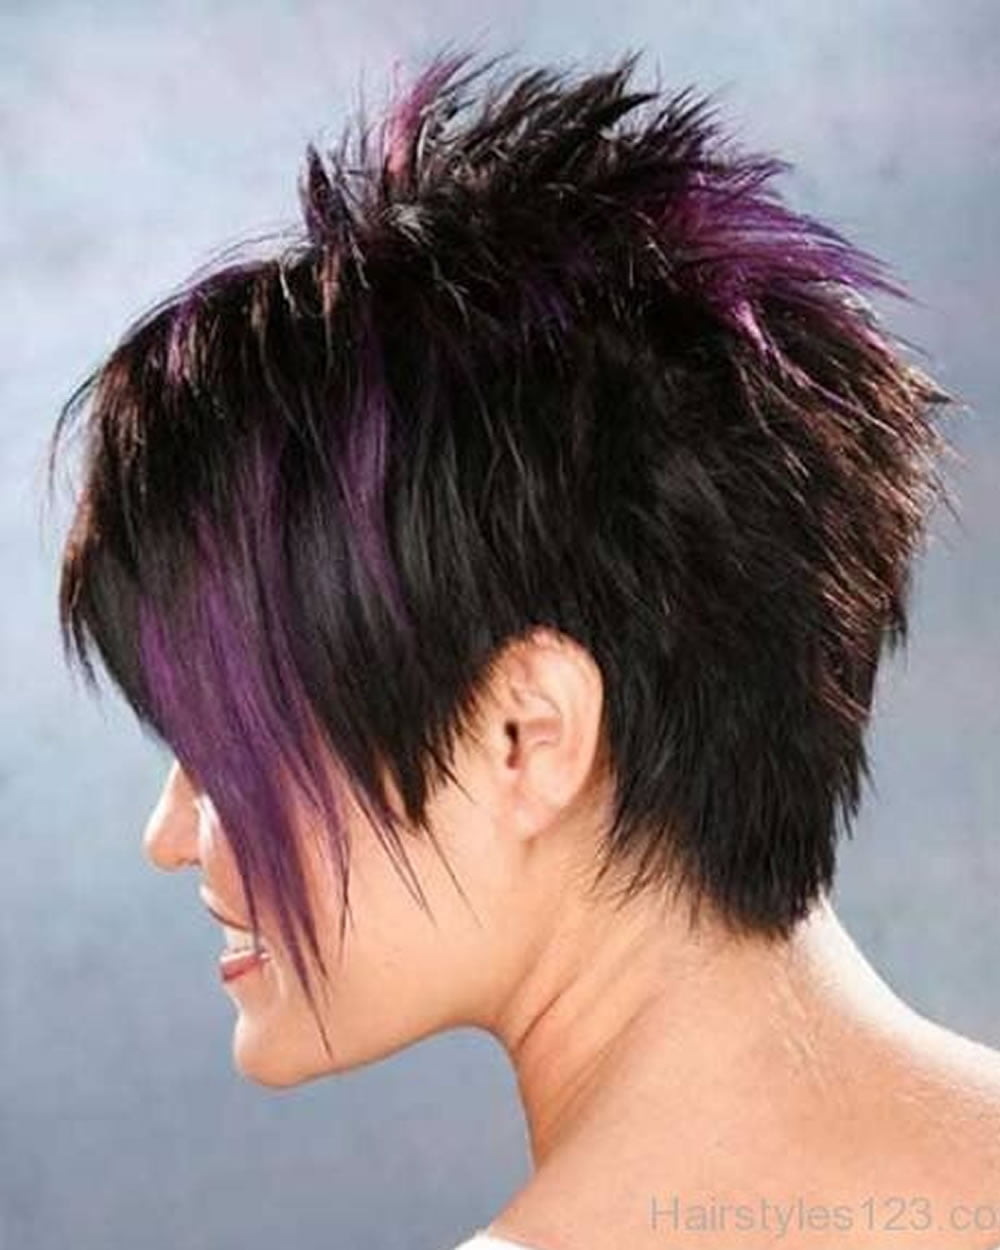 haircuts for short hair ladies spiky haircuts amp hairstyles for 2018 page 2 6199 | Short Spiky Haircuts Hairstyles for Women 2018 4